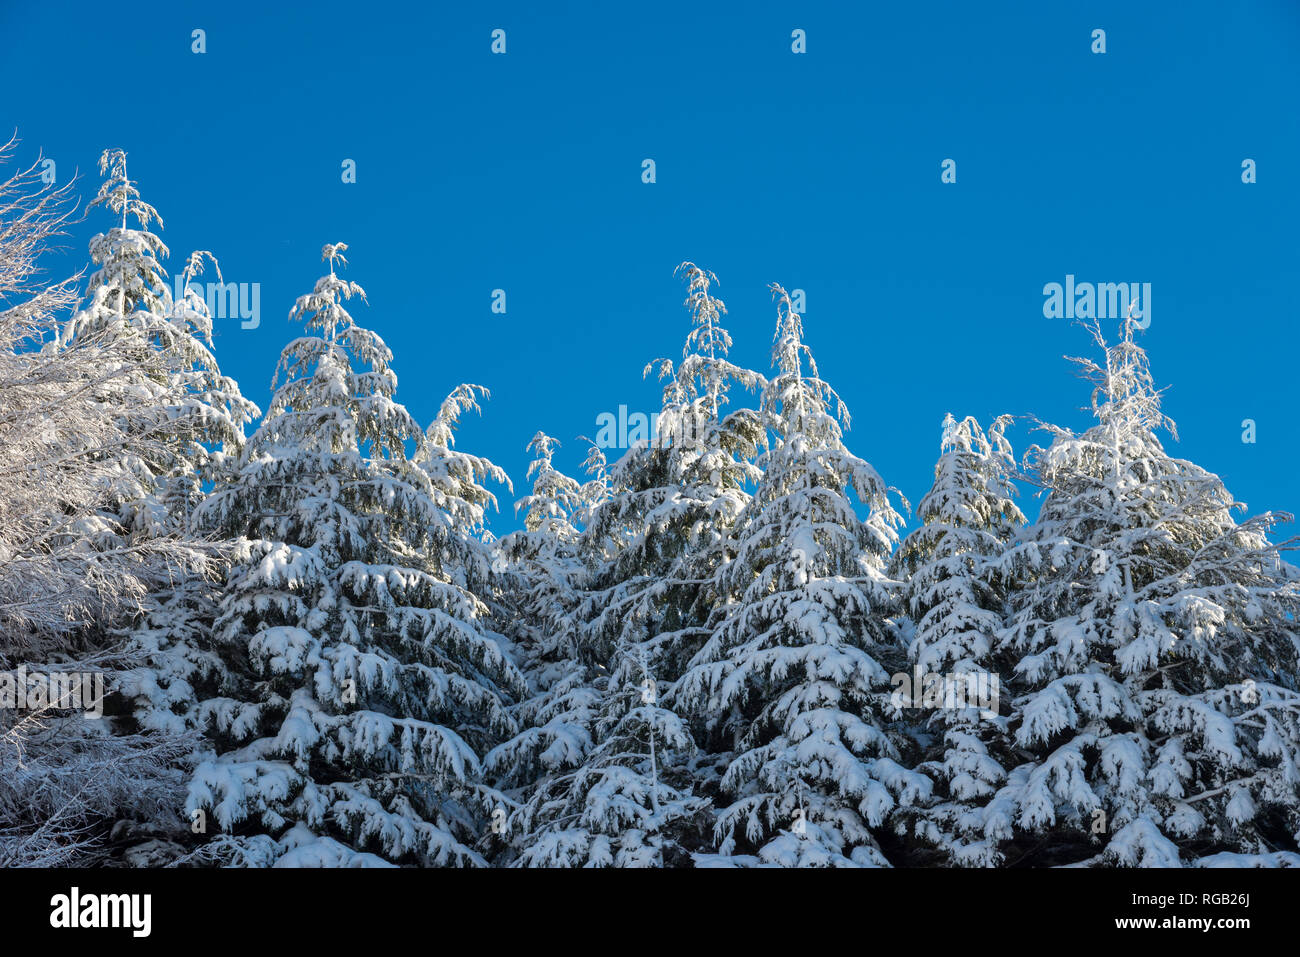 Spruce trees covered in snow against a clear blue sky on a cold winter morning. - Stock Image